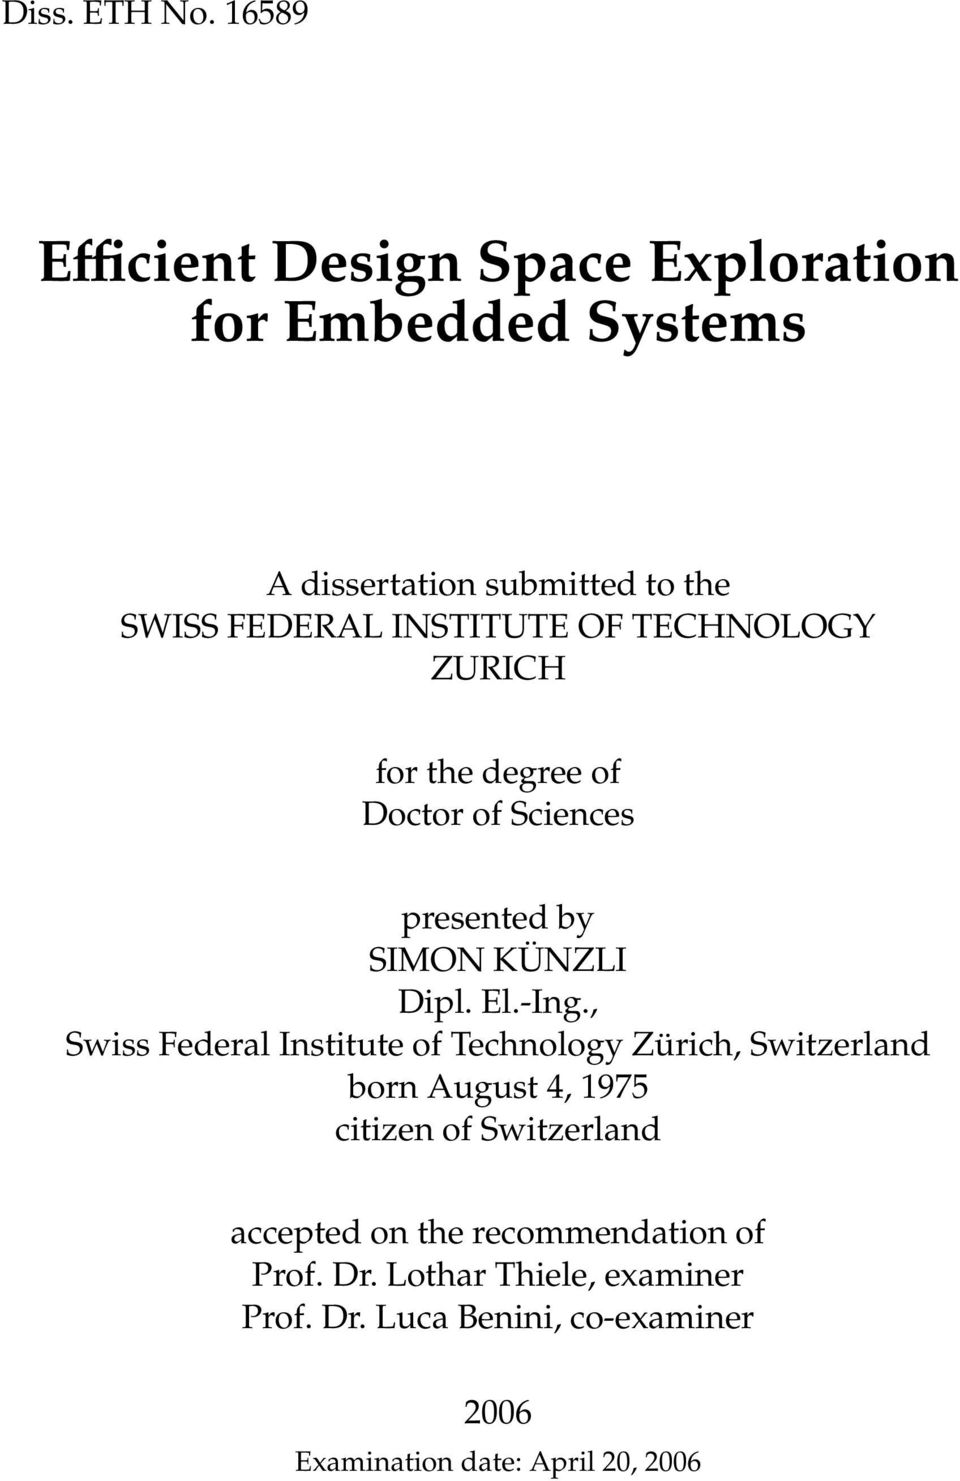 OF TECHNOLOGY ZURICH for the degree of Doctor of Sciences presented by SIMON KÜNZLI Dipl. El.-Ing.